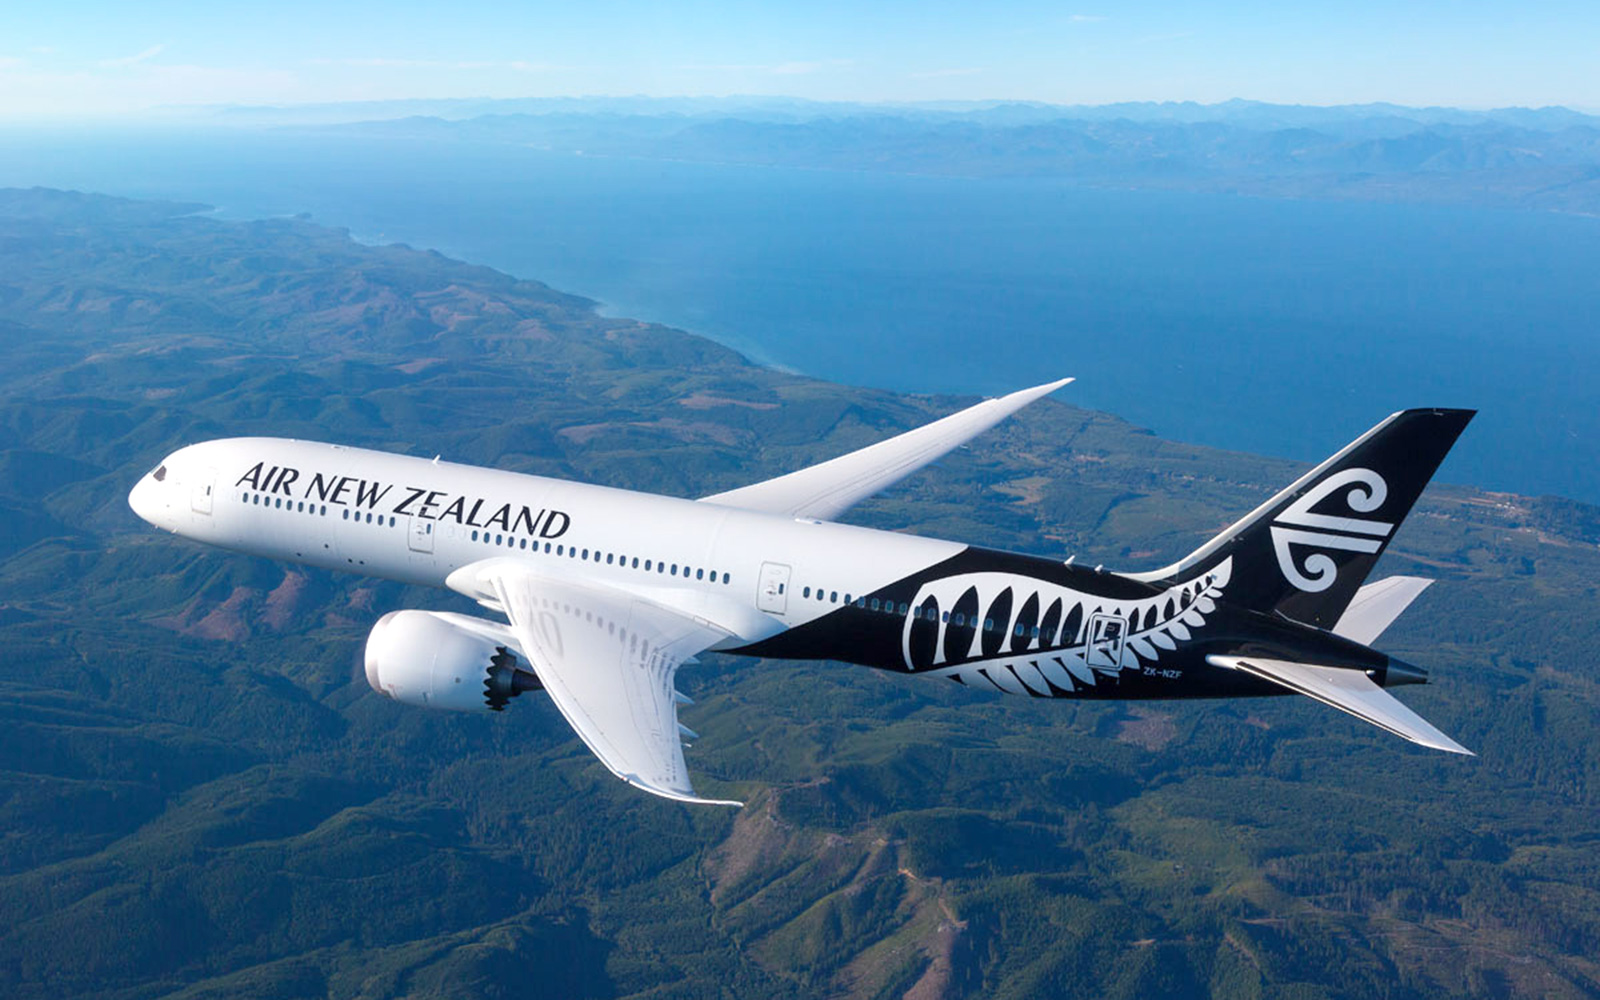 Air New Zealand plane in flight